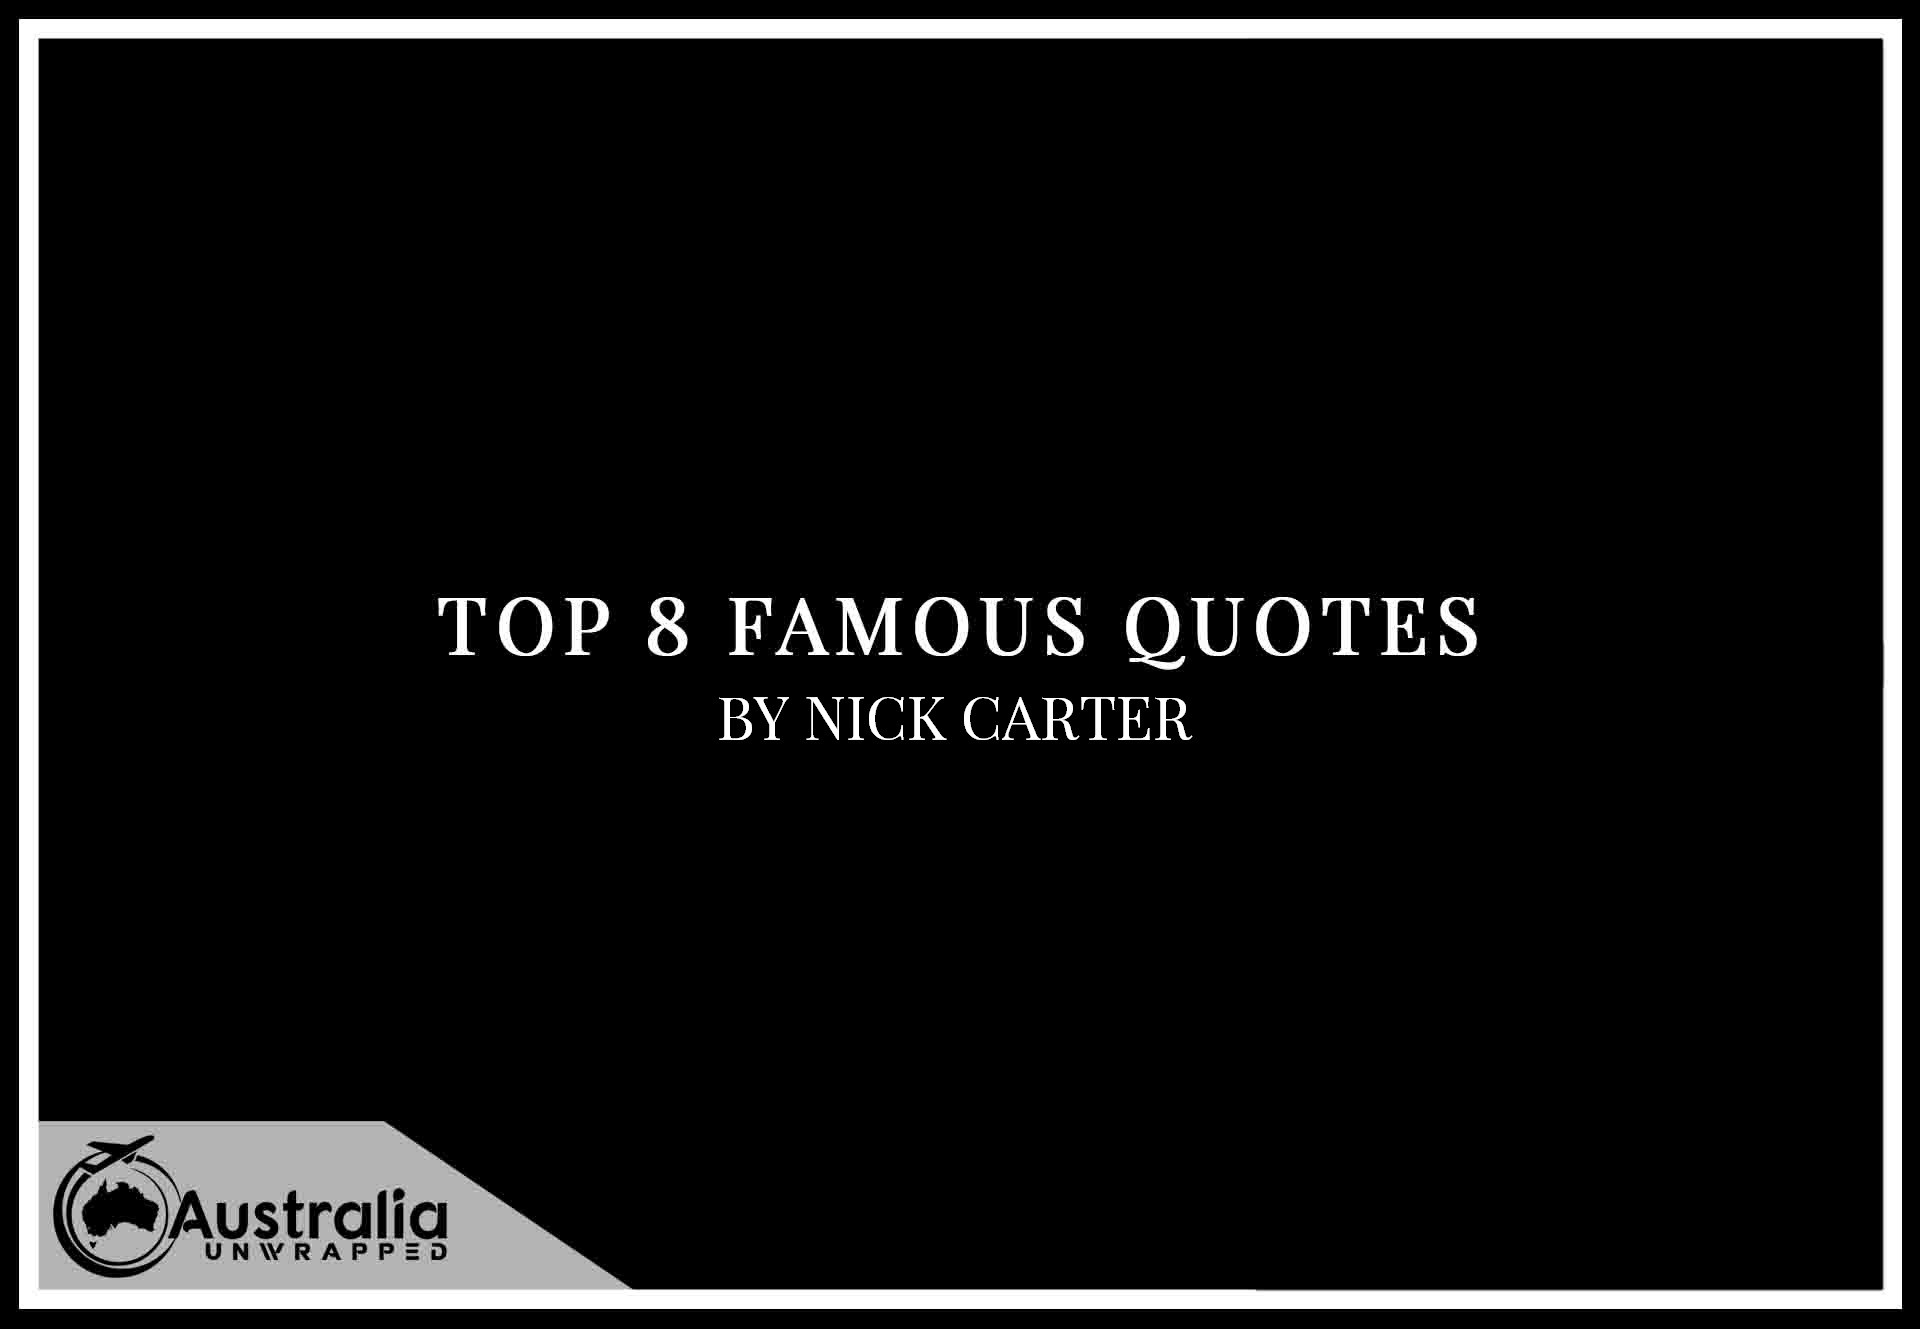 Top 8 Famous Quotes by Author Nick Carter